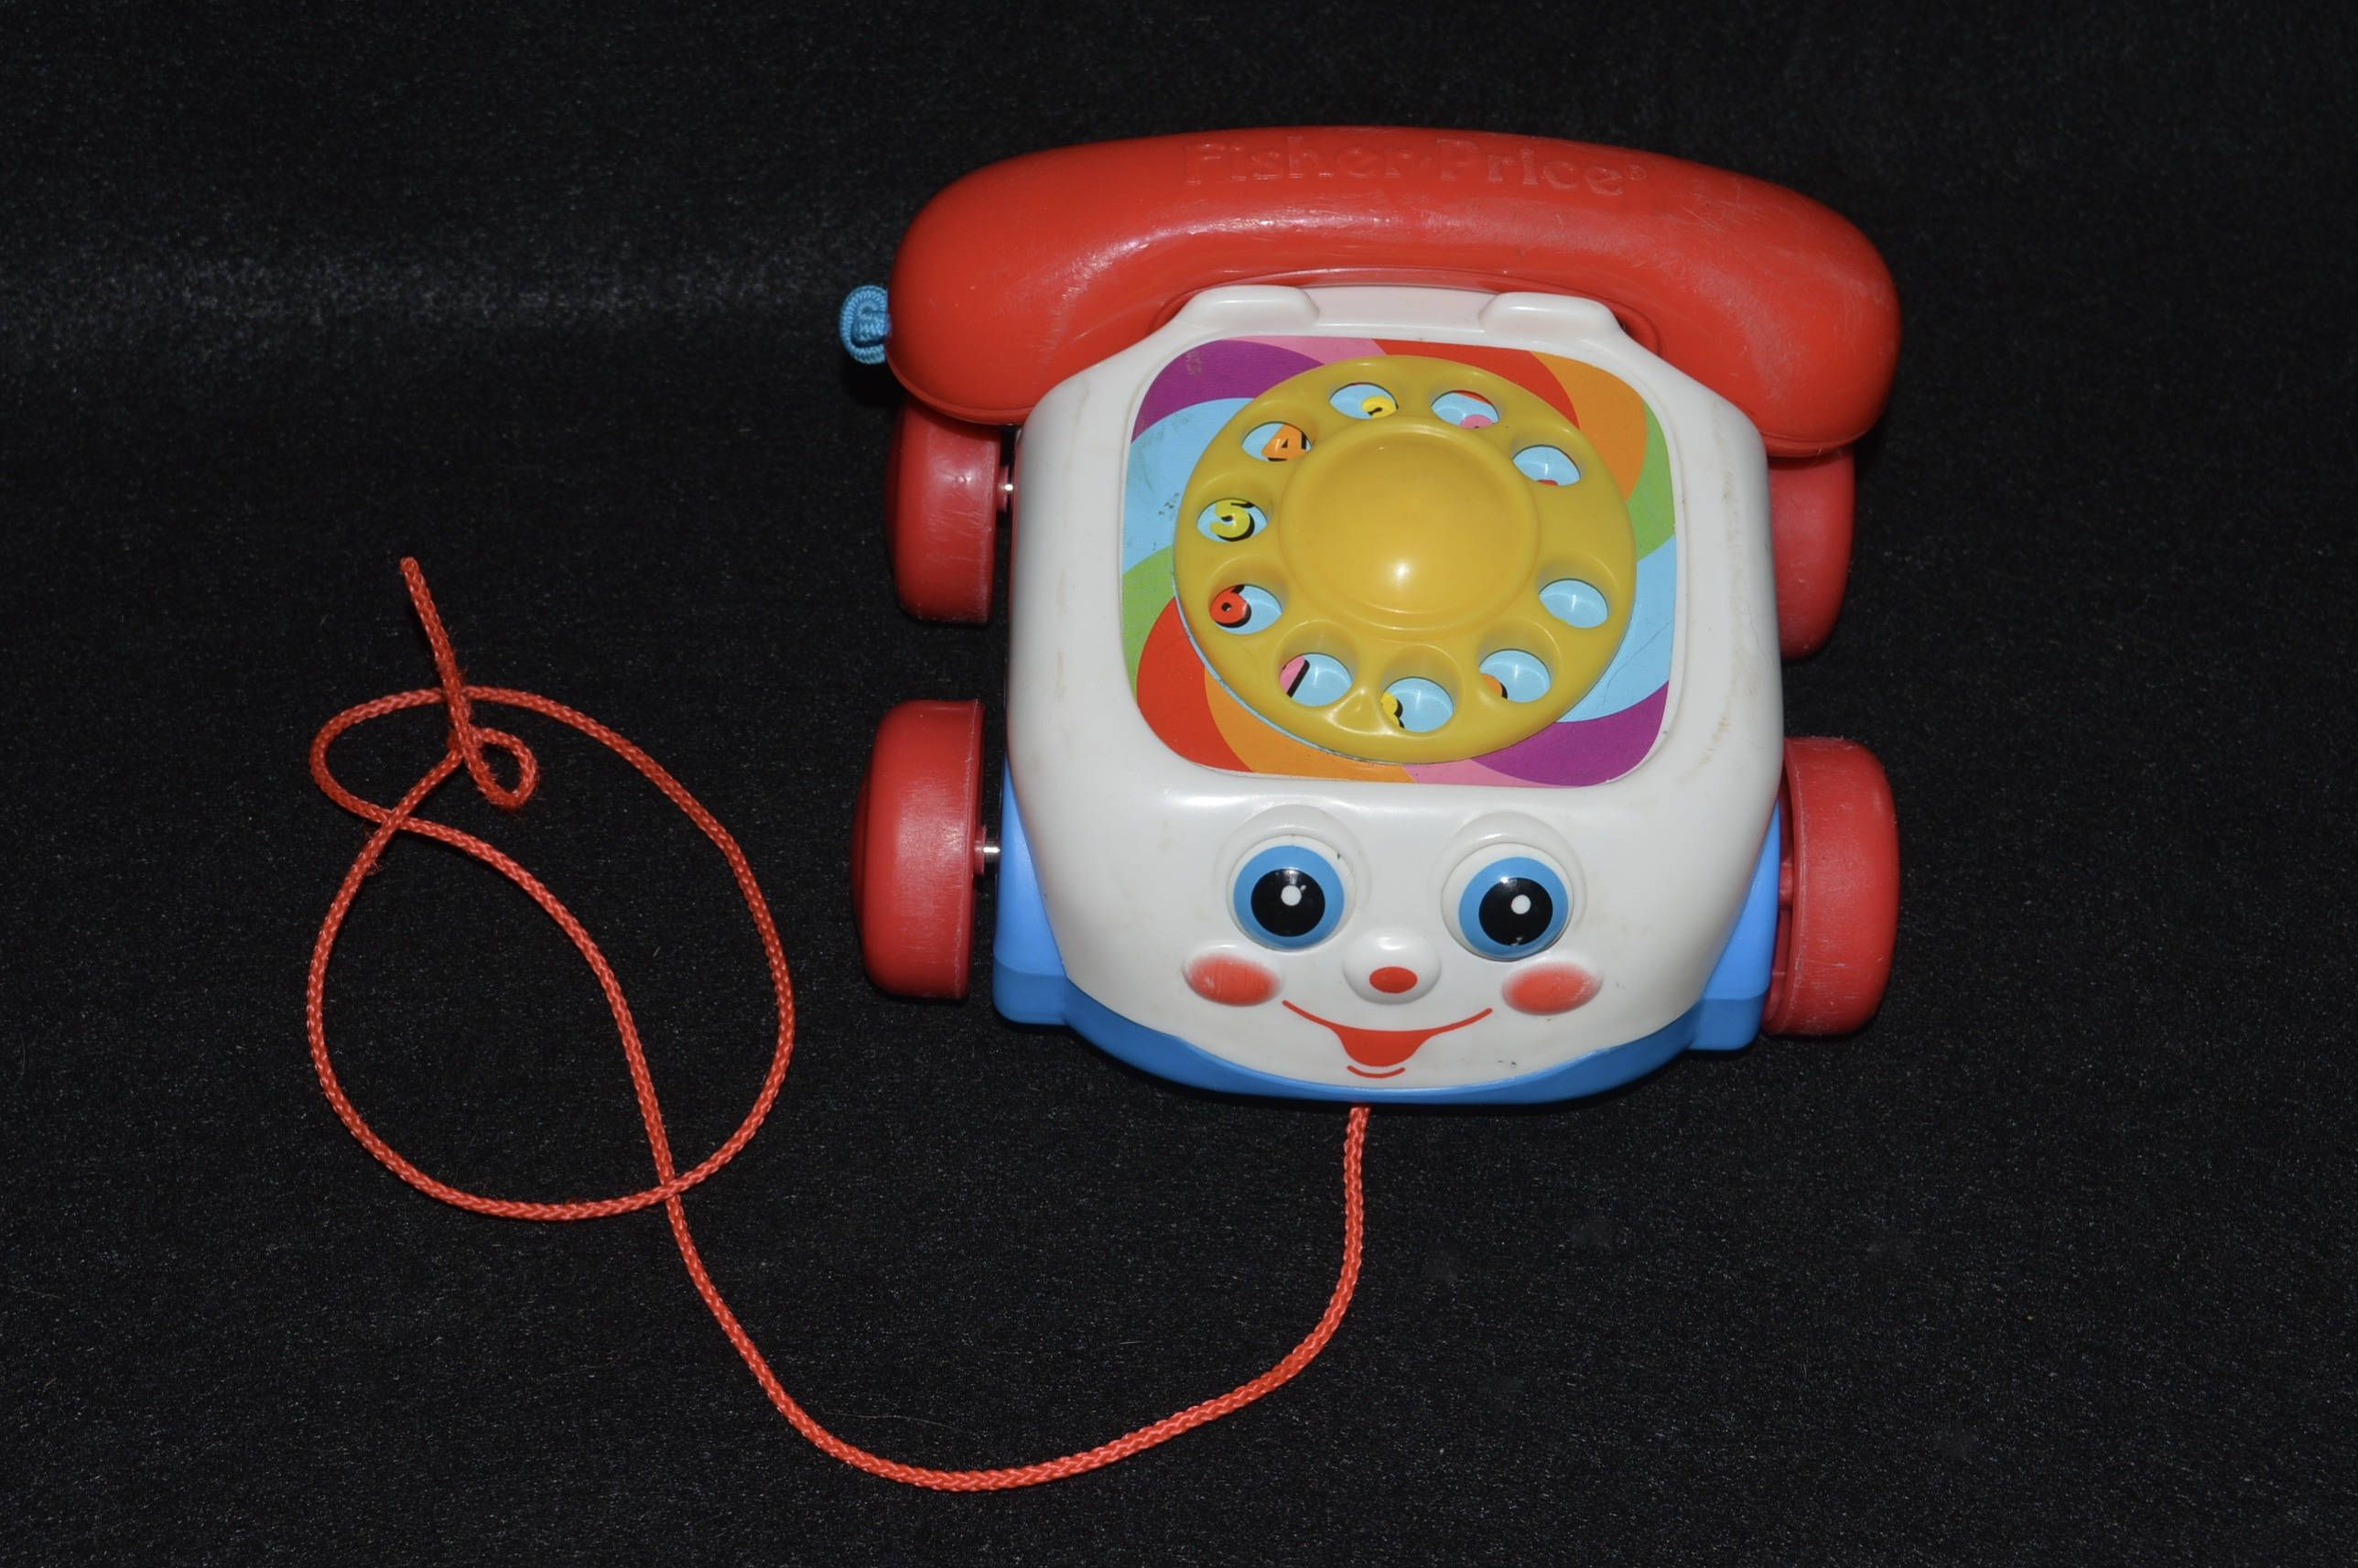 medium resolution of toy phone fisher price chatter box phone telephone toy child s pull toy vintage toys toy rotary phone wheeled phone phone toy by